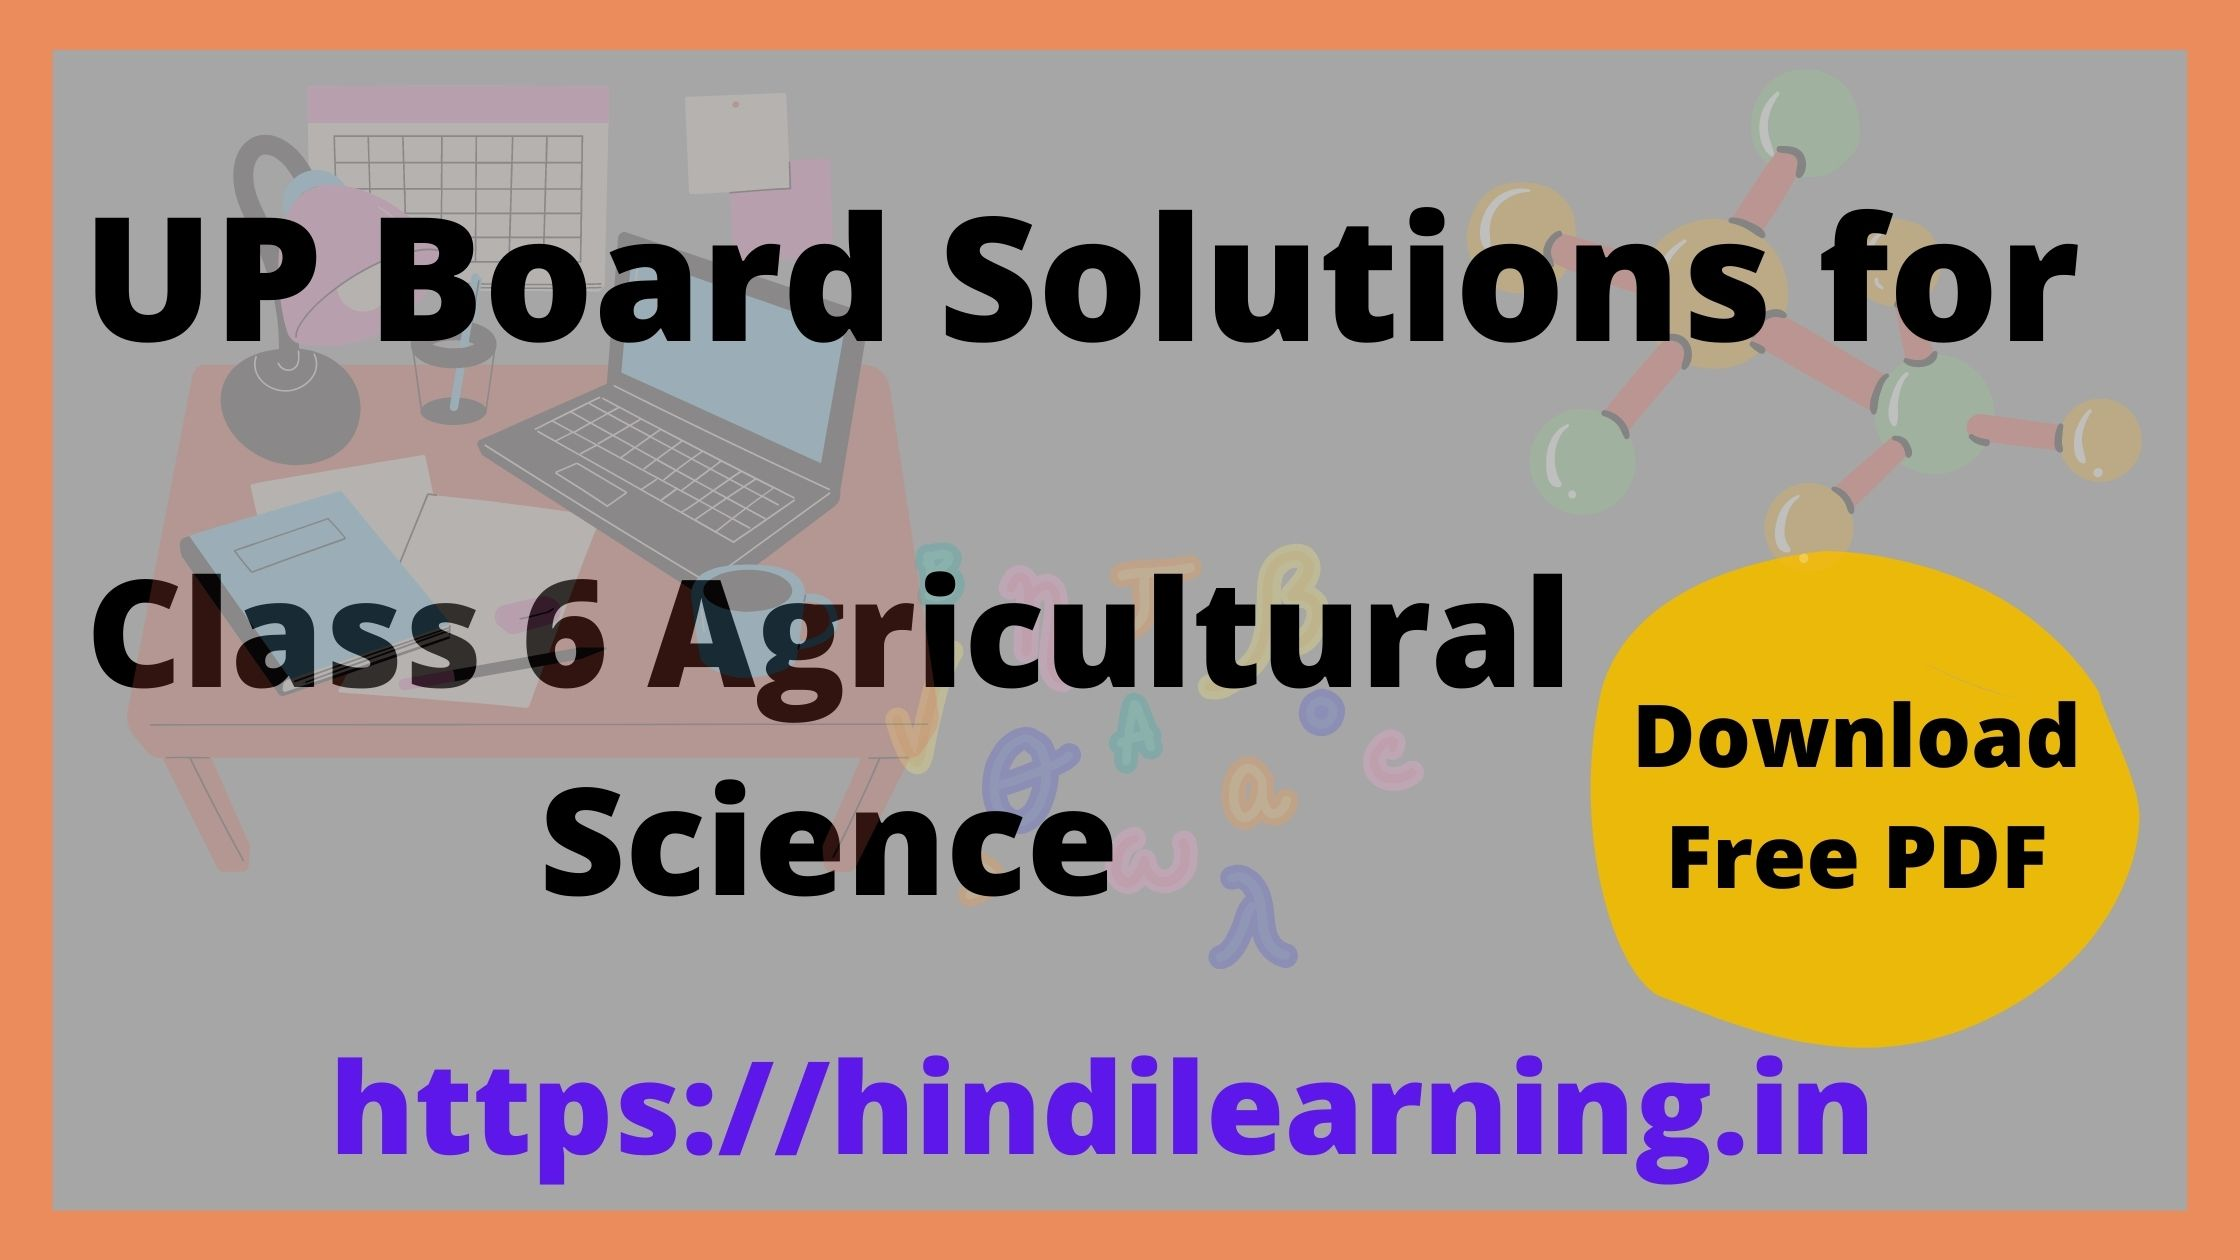 UP Board Solutions for Class 6 Agricultural Science ( कृषि विज्ञान )